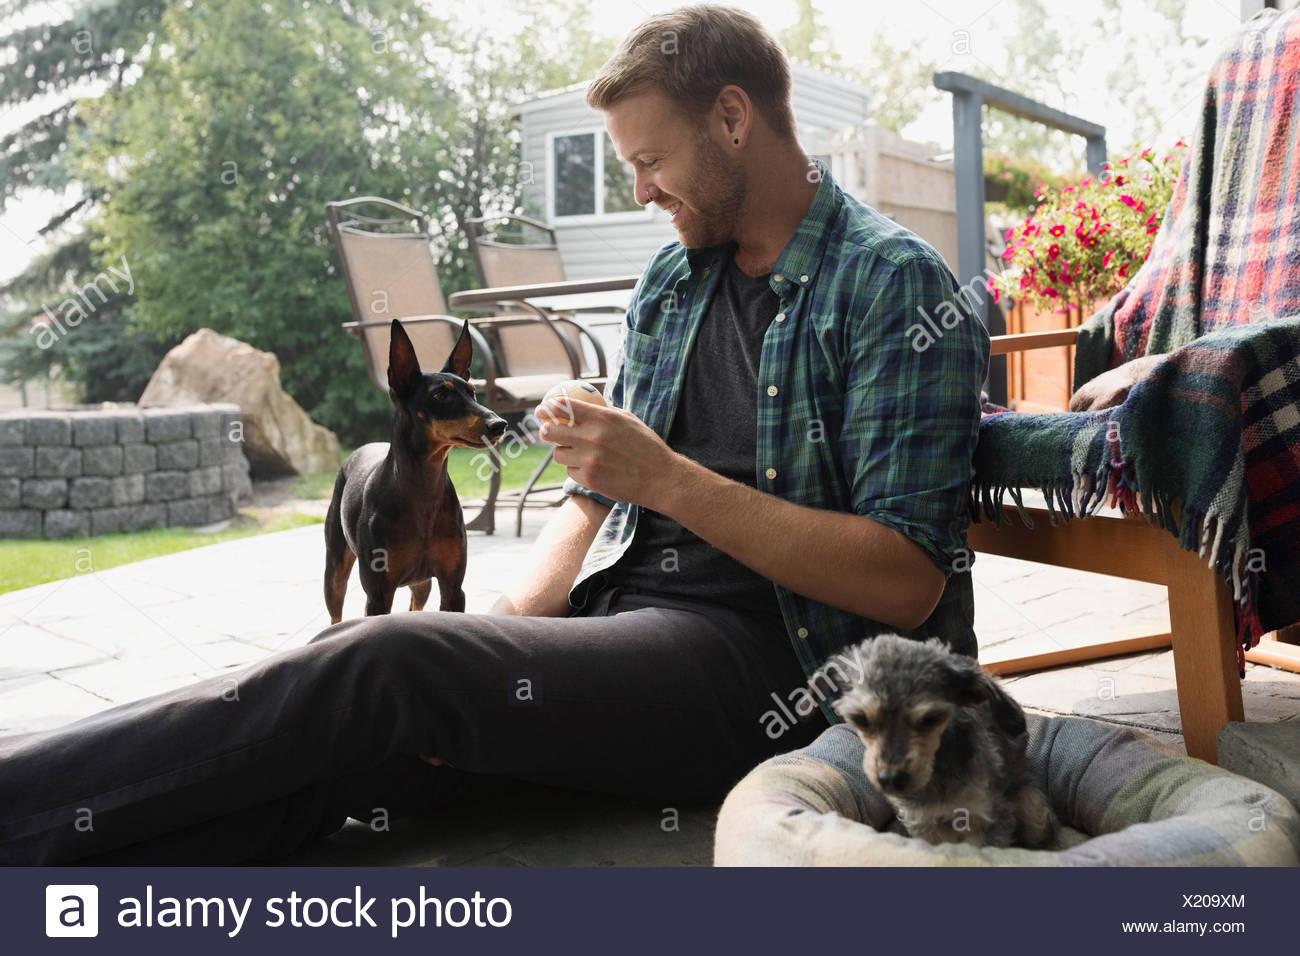 Man holding balle de tennis pour chien on patio Photo Stock